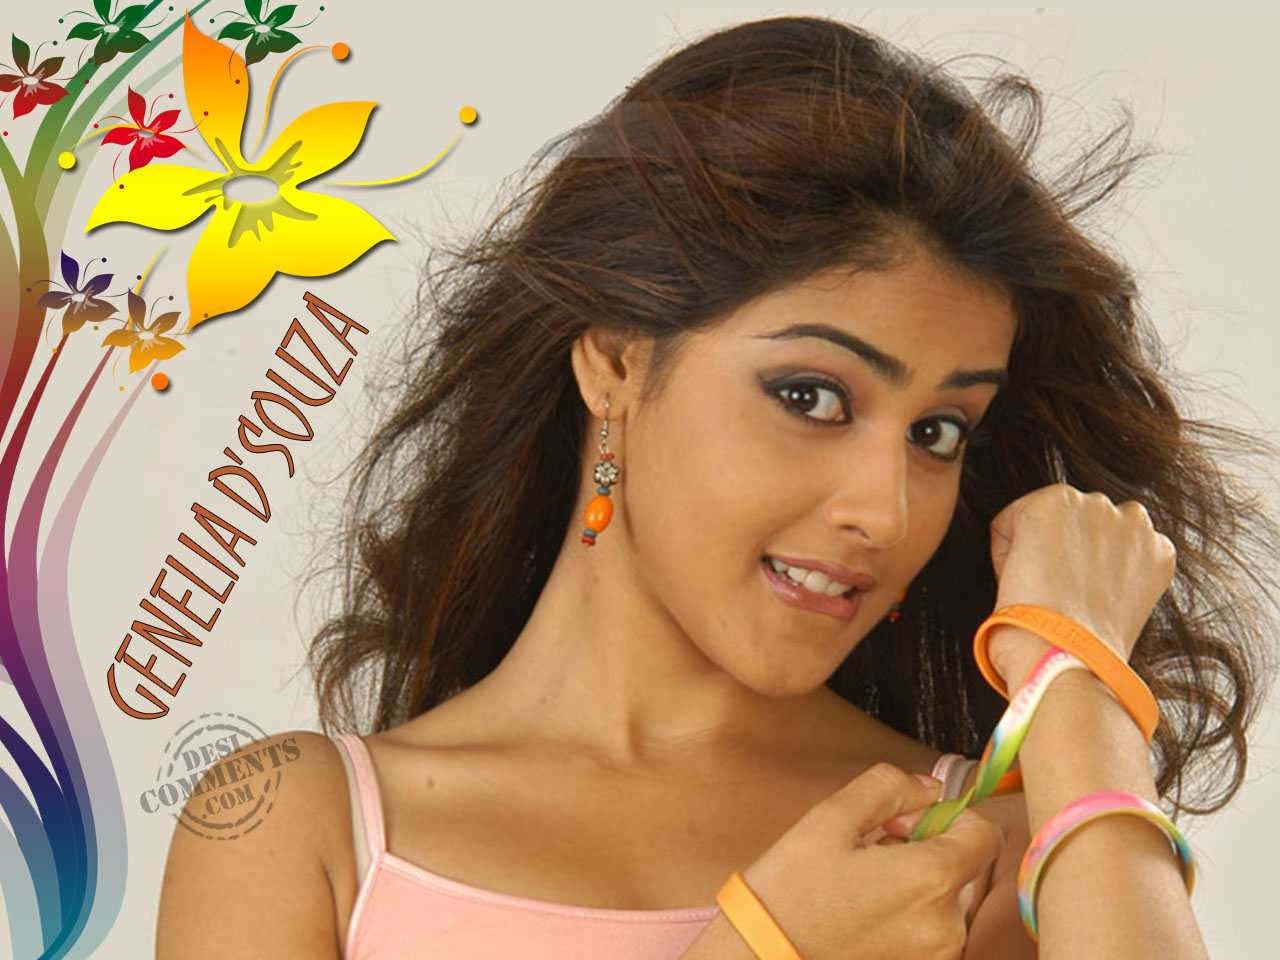 Cute Indian Girls Wallpaper Cakes And Body Girl Wallpaper